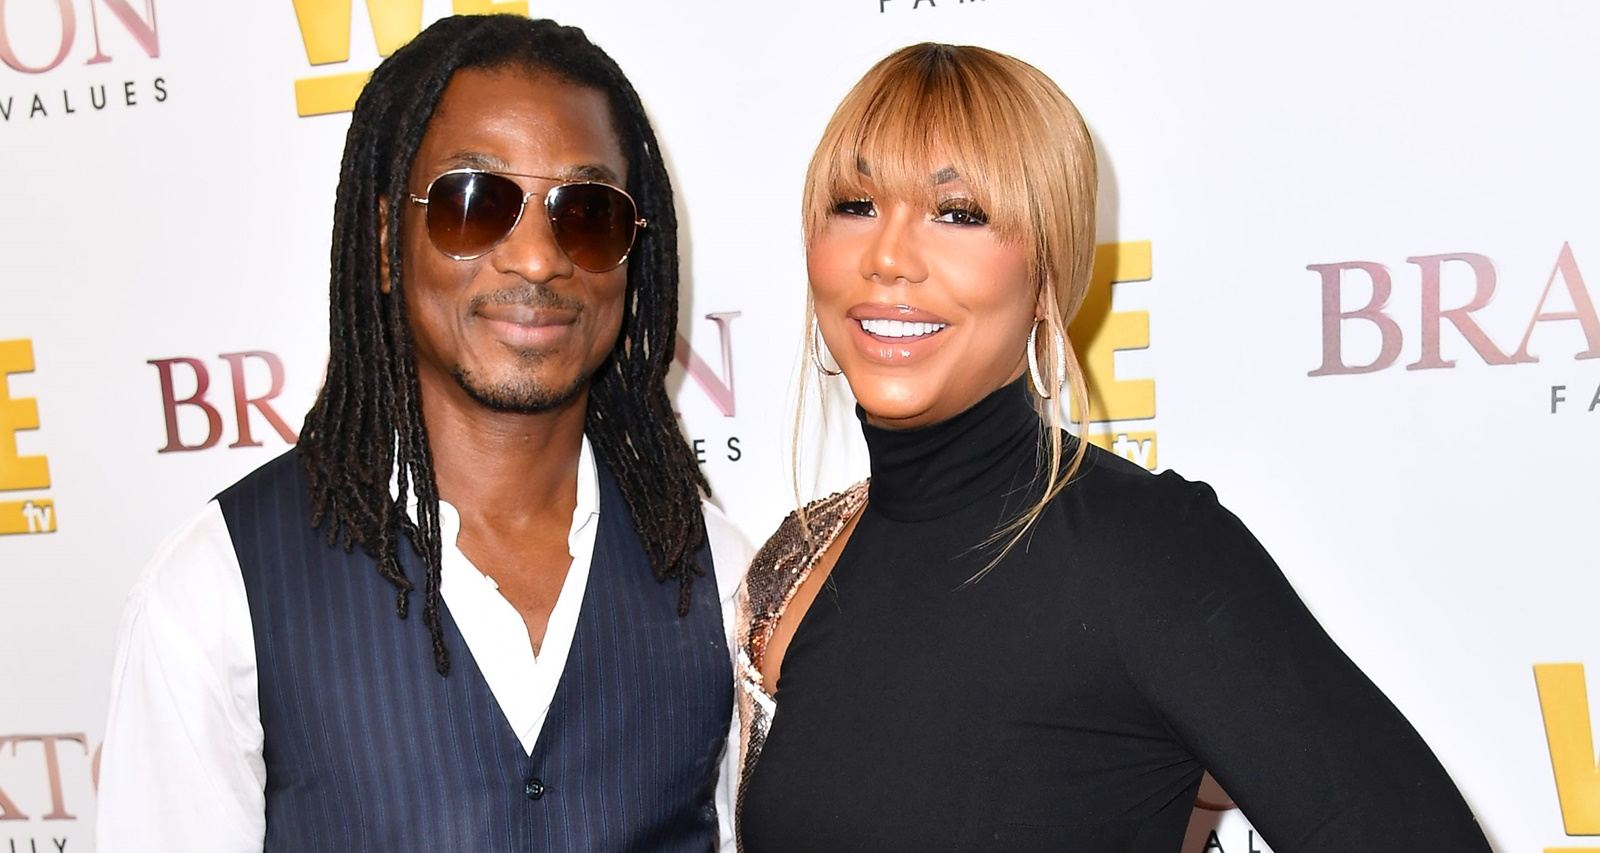 Tamar Braxton Tries To Cook Like Her Nigerian BF, David's Sister - Fans Give Her Advice